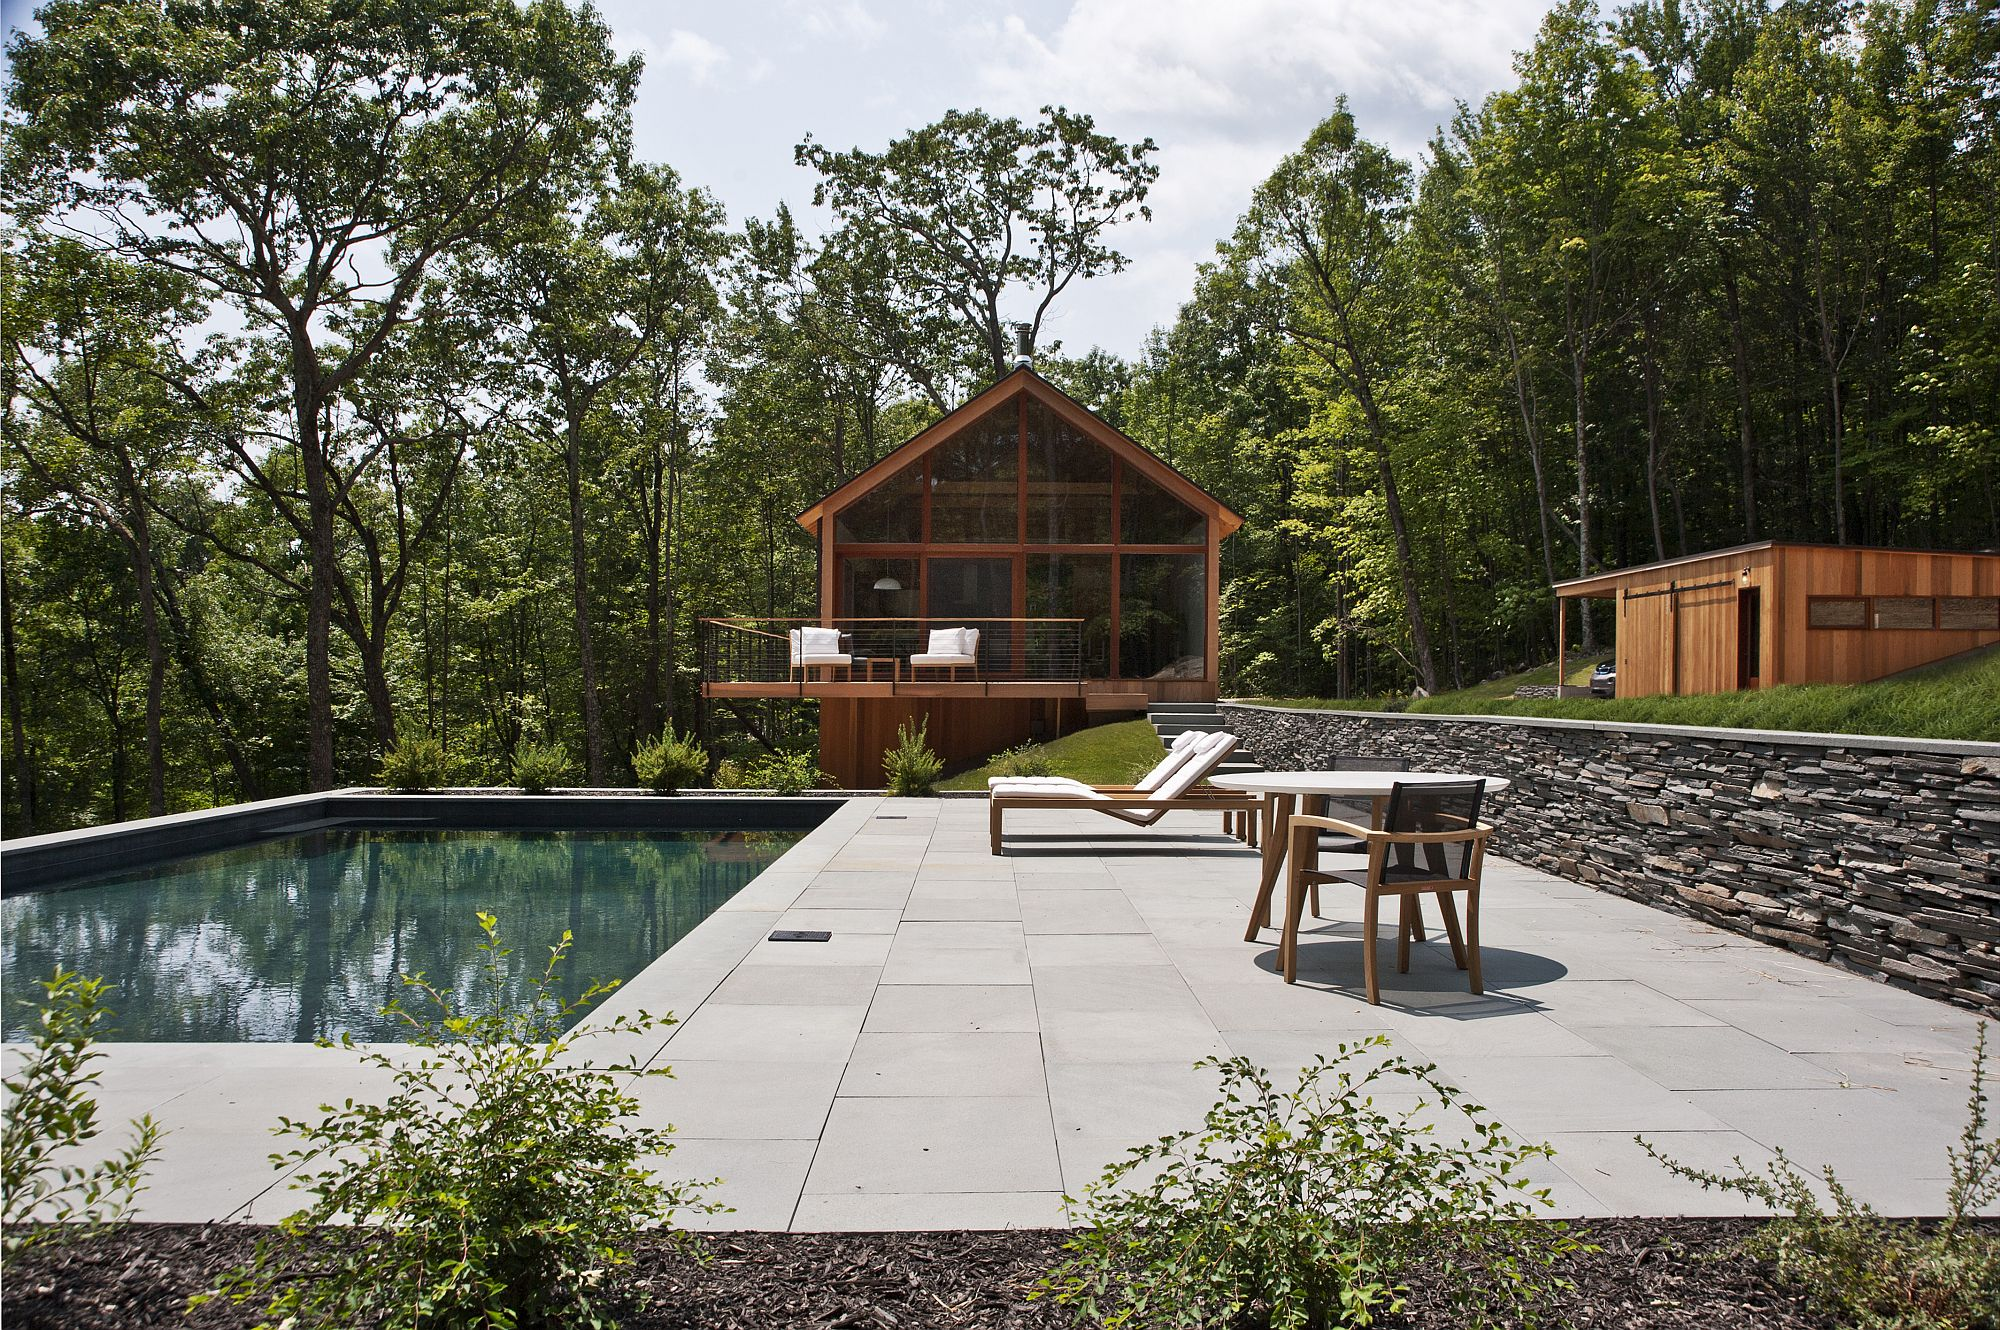 Upscale collection of modern cabins in the Catskills Hudson Woods: Sustainable Modern Cabins Offer an Escape from NYC